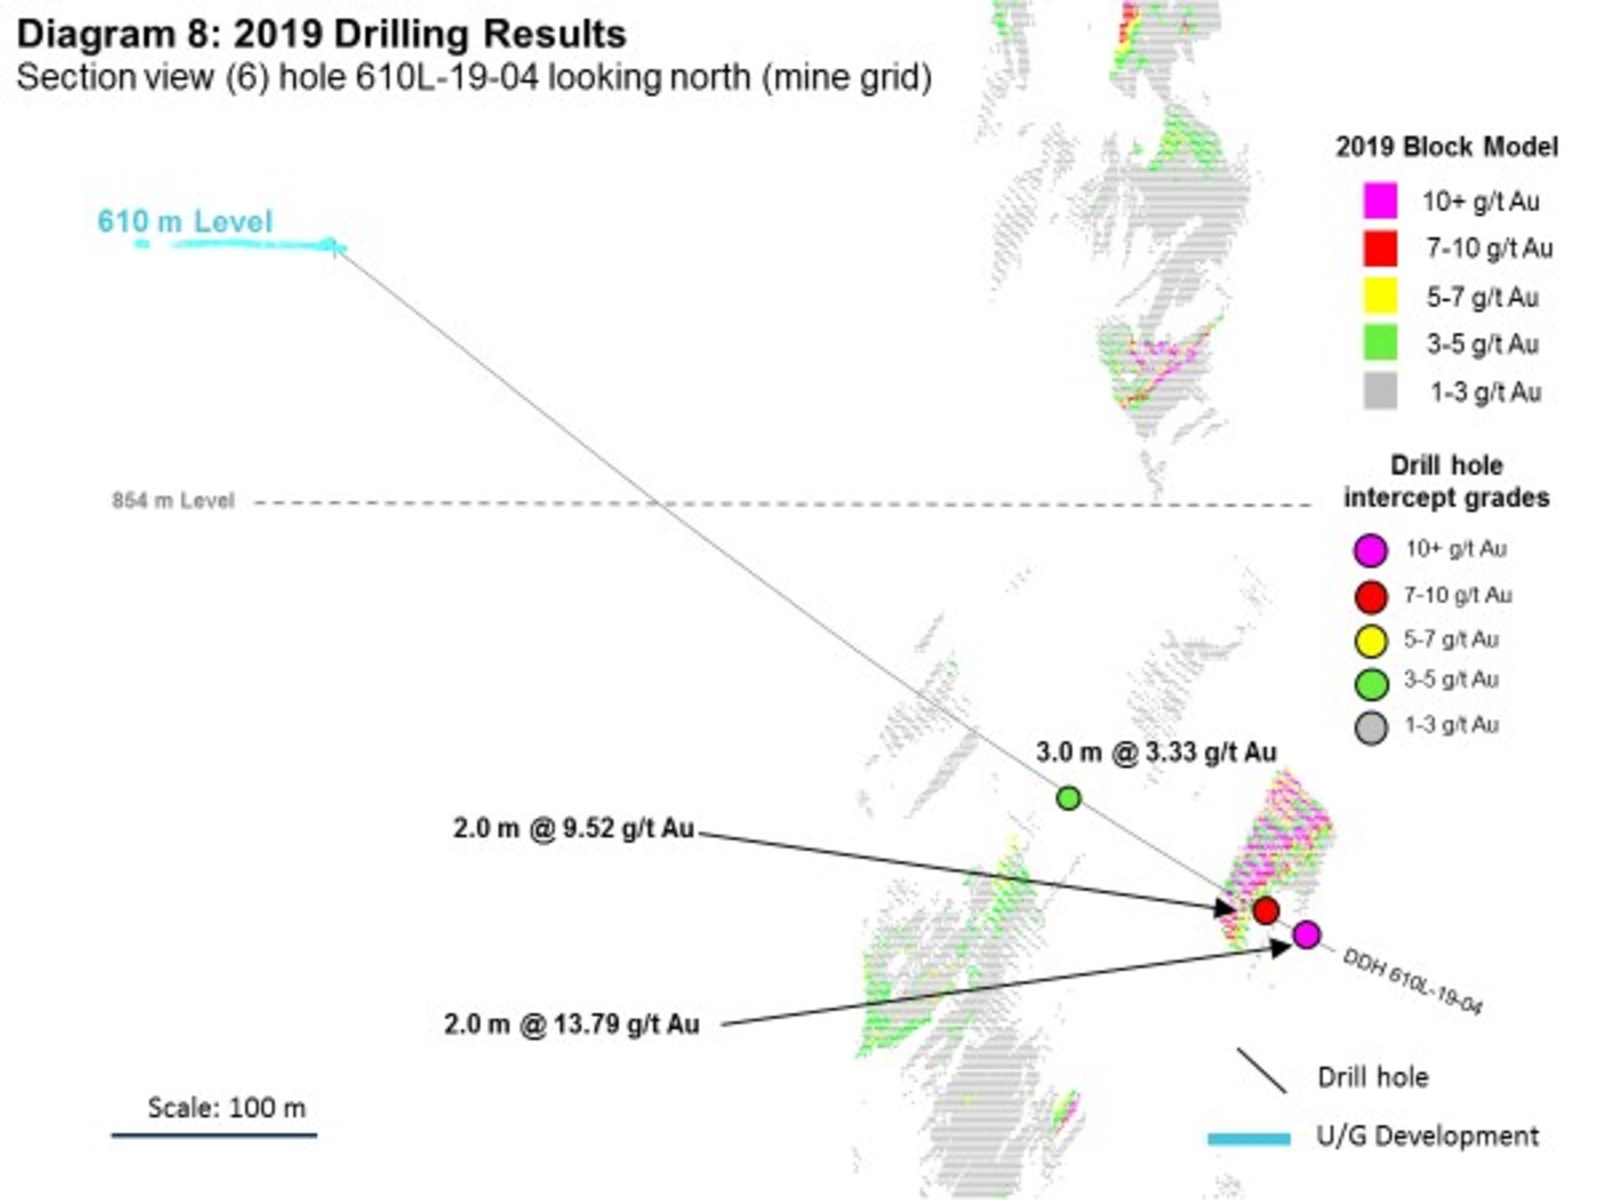 Diagram 8: 2019 Drilling Results